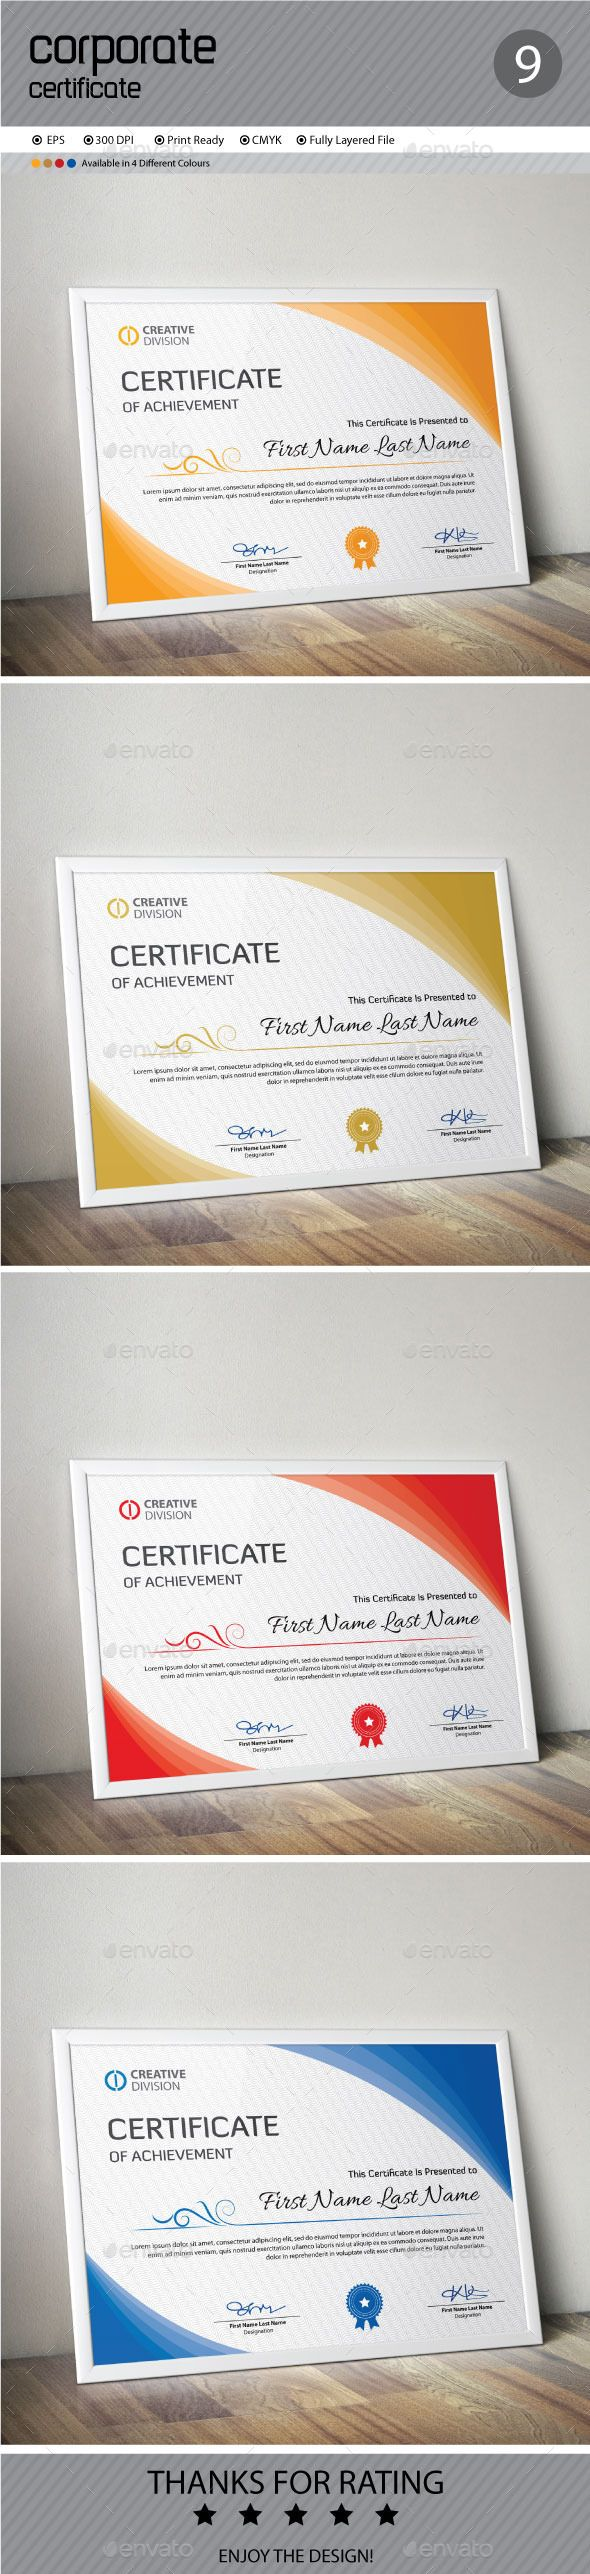 Certificate Template Vector EPS. Download here: http://graphicriver.net/item/certificate/11957373?ref=ksioks